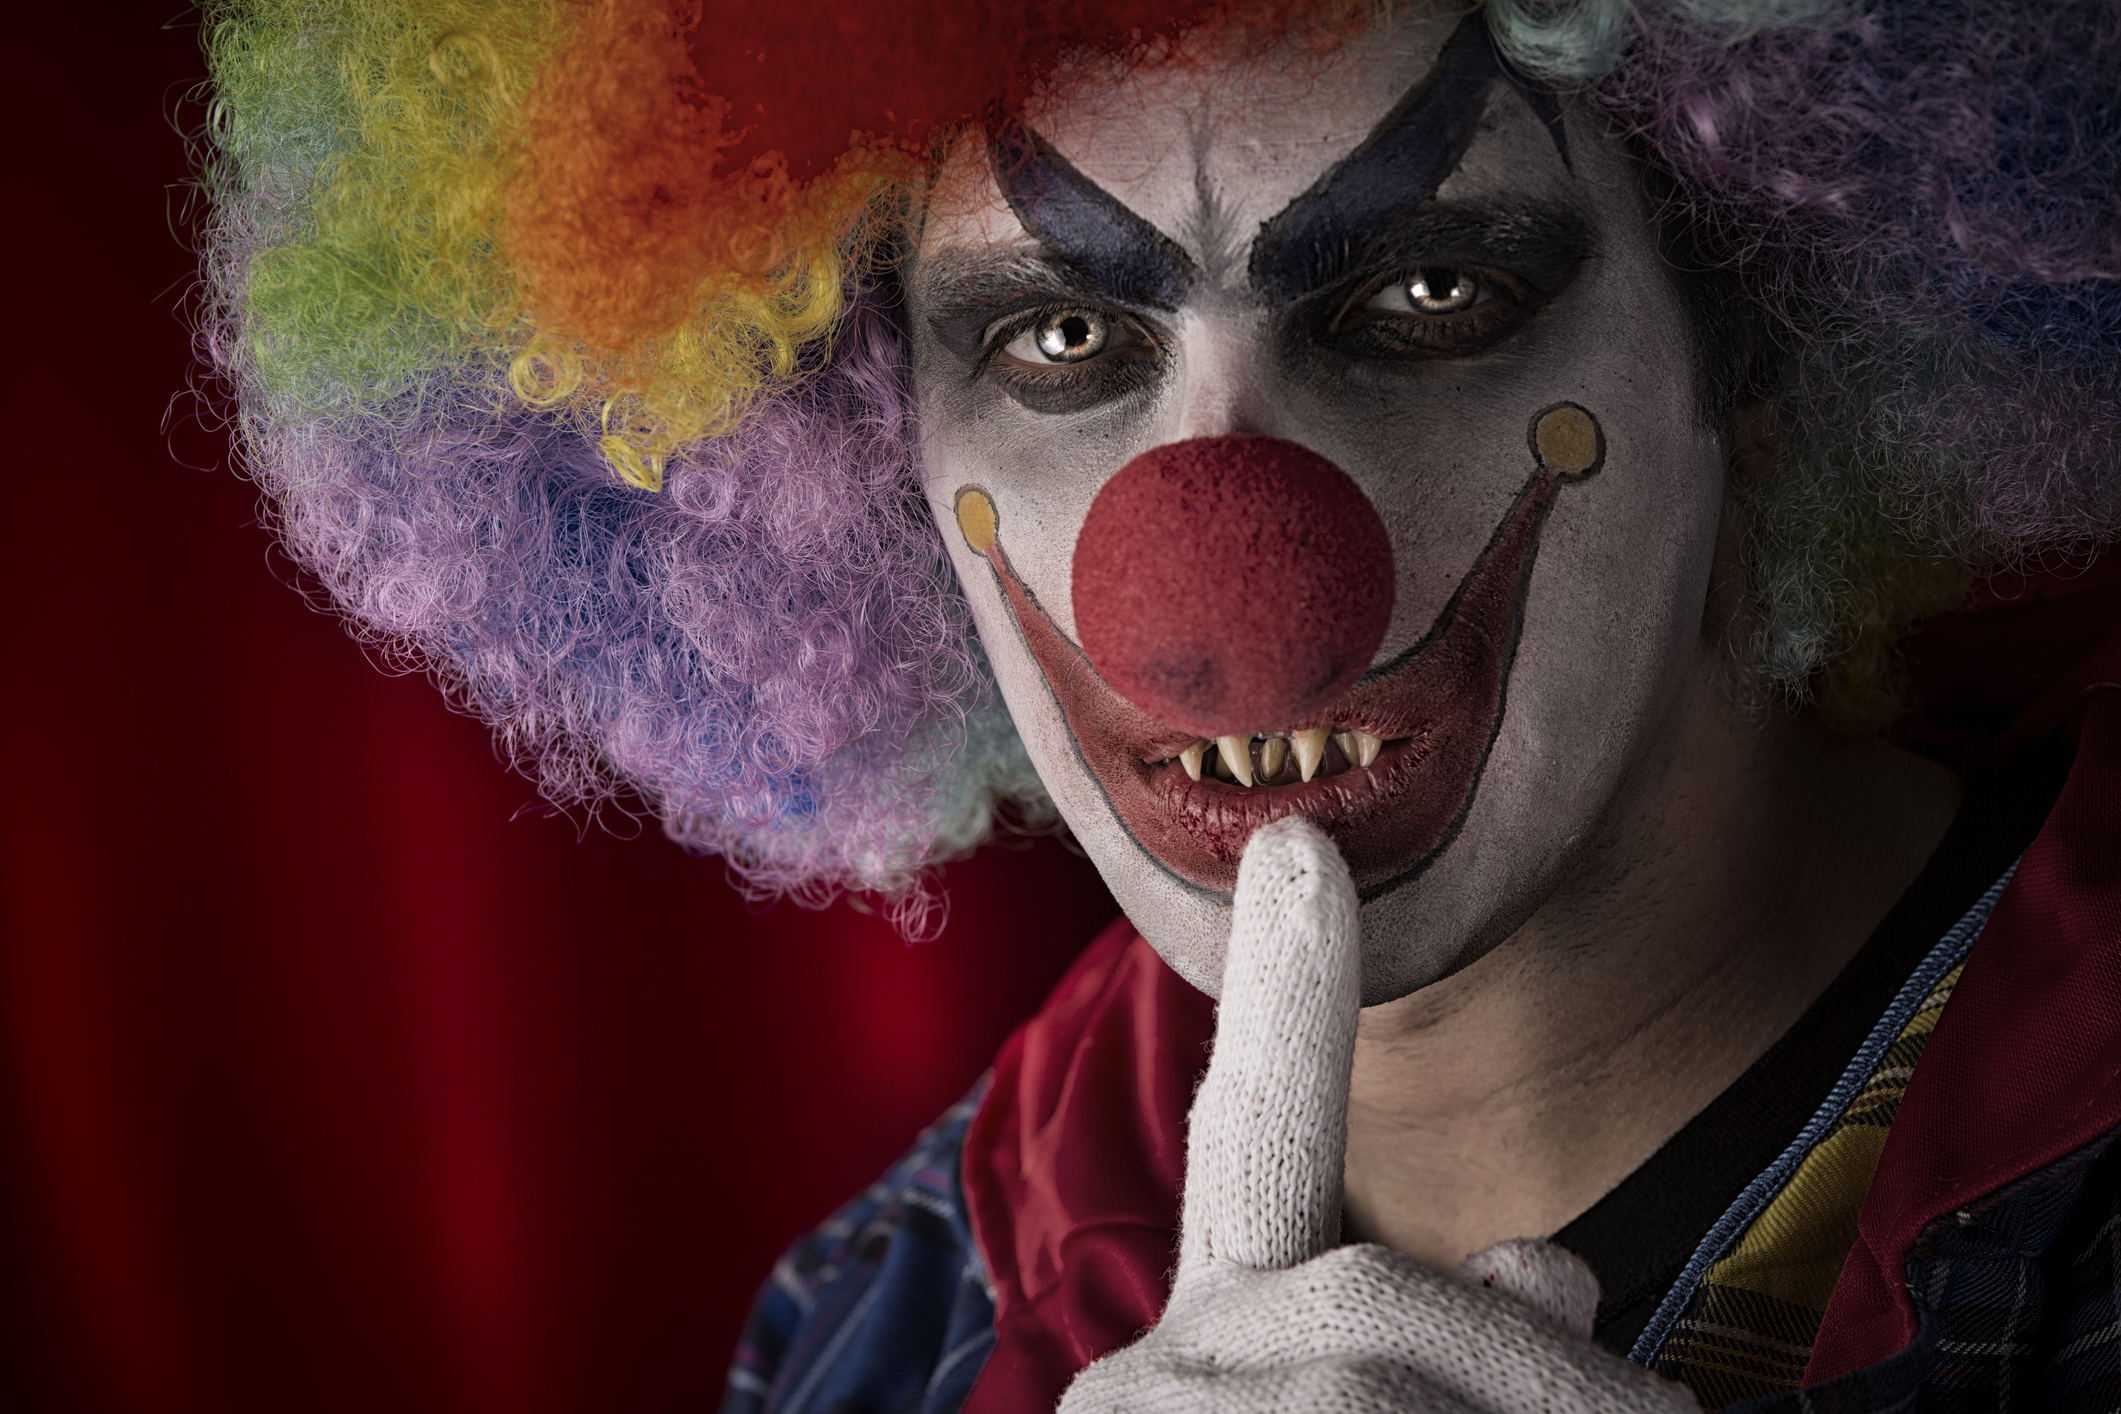 Creepy Clown with fingers on lips